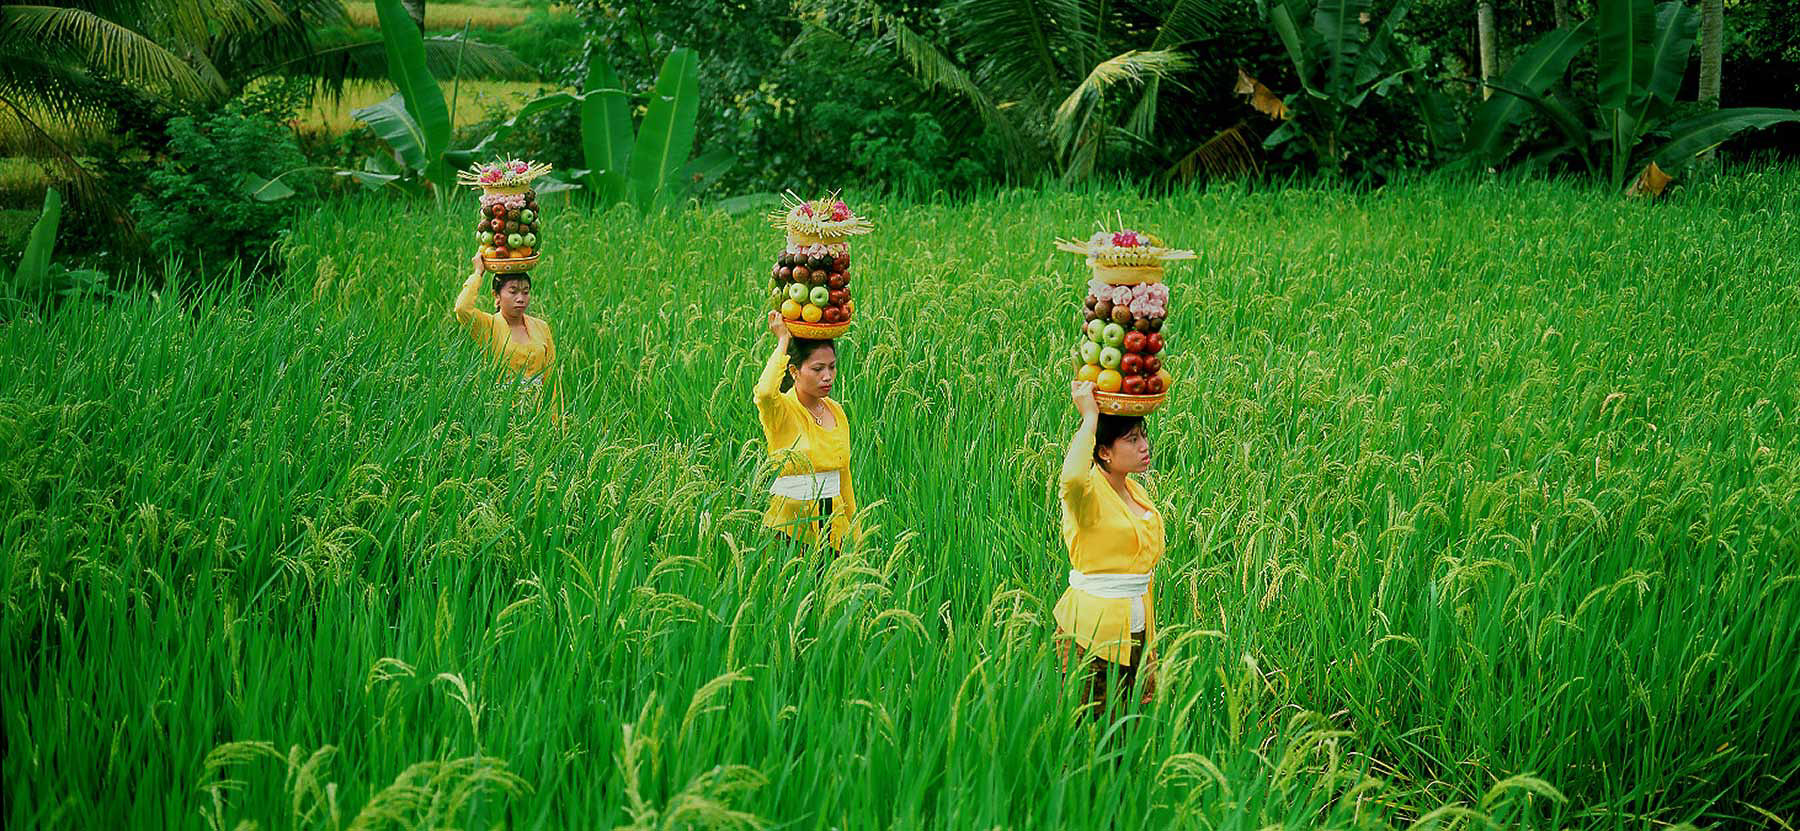 022-Bali-women-rice-field